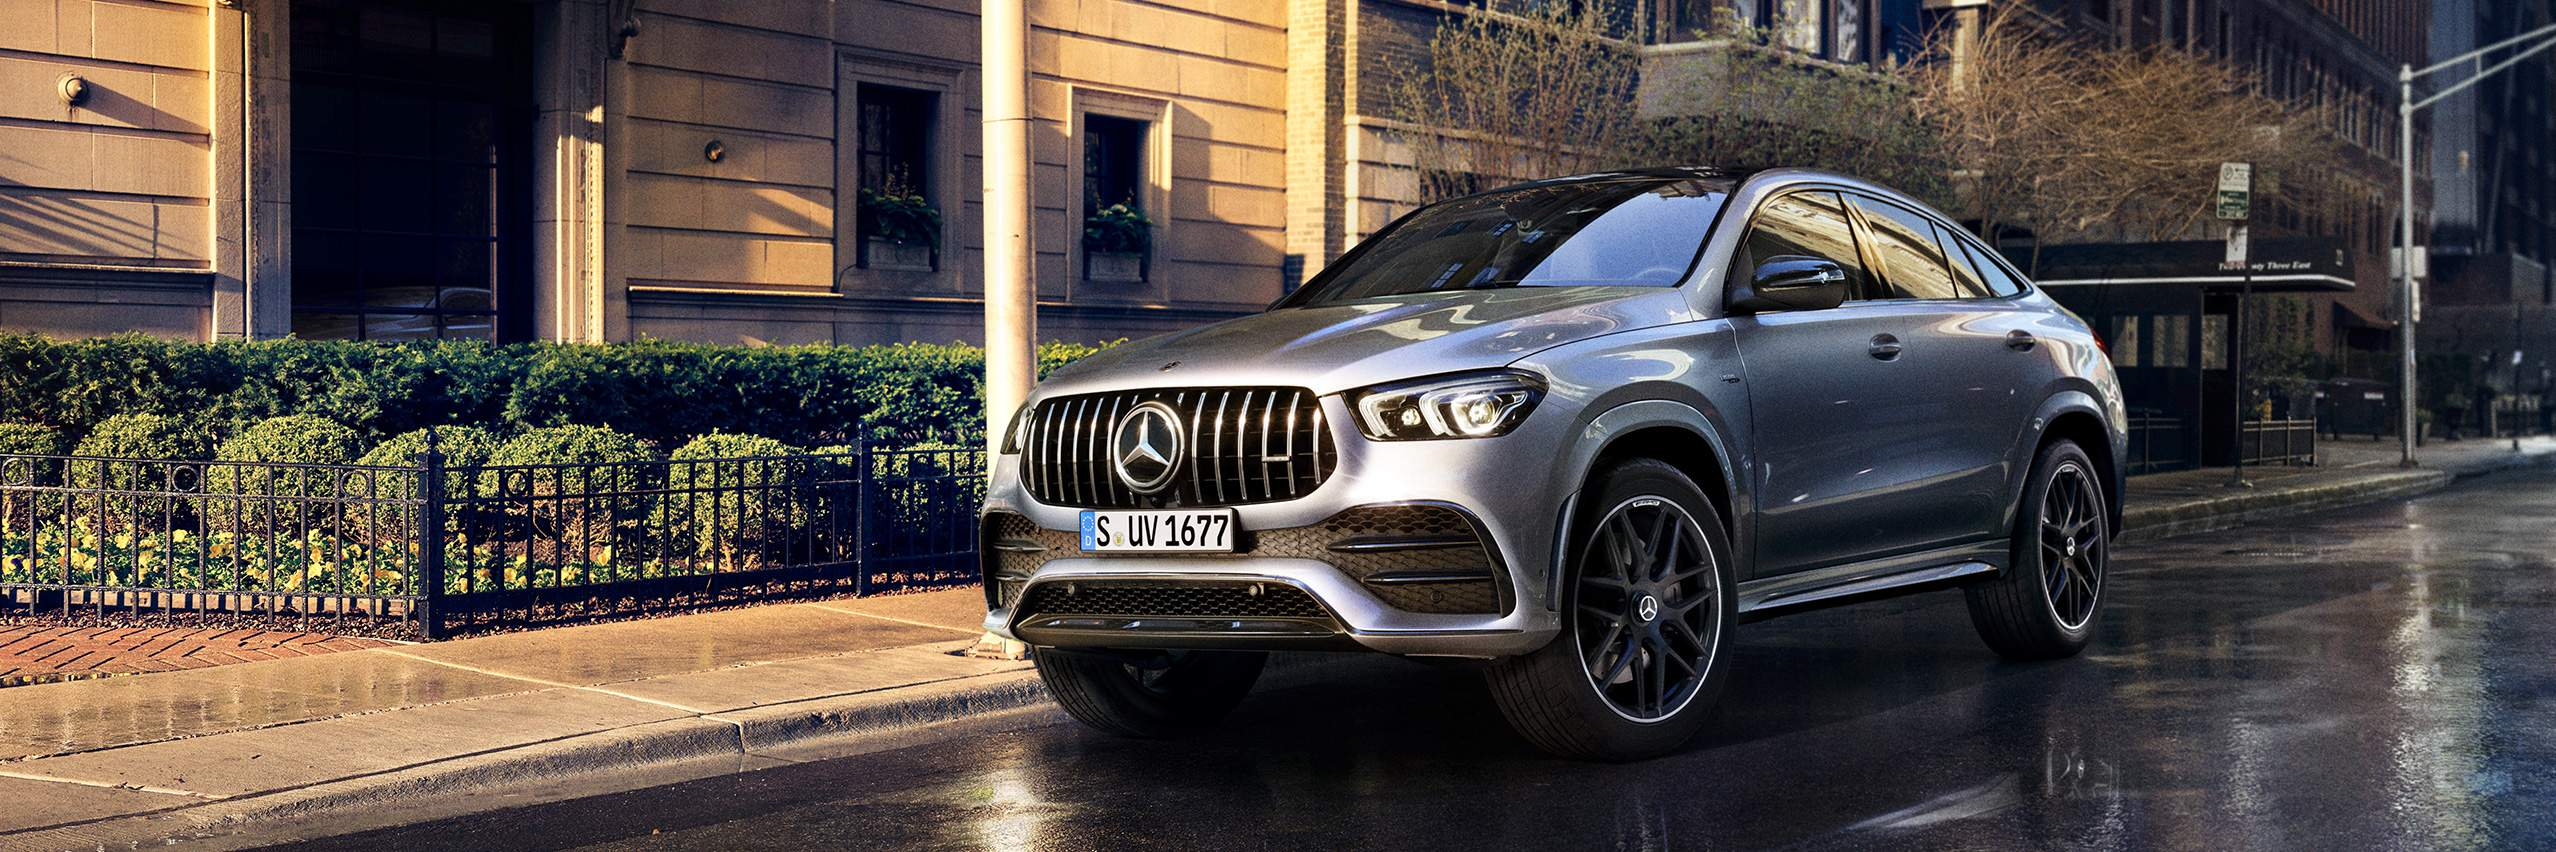 CAR-Avenue-Mercedes-Benz-GLE-Coupe-SUV-06